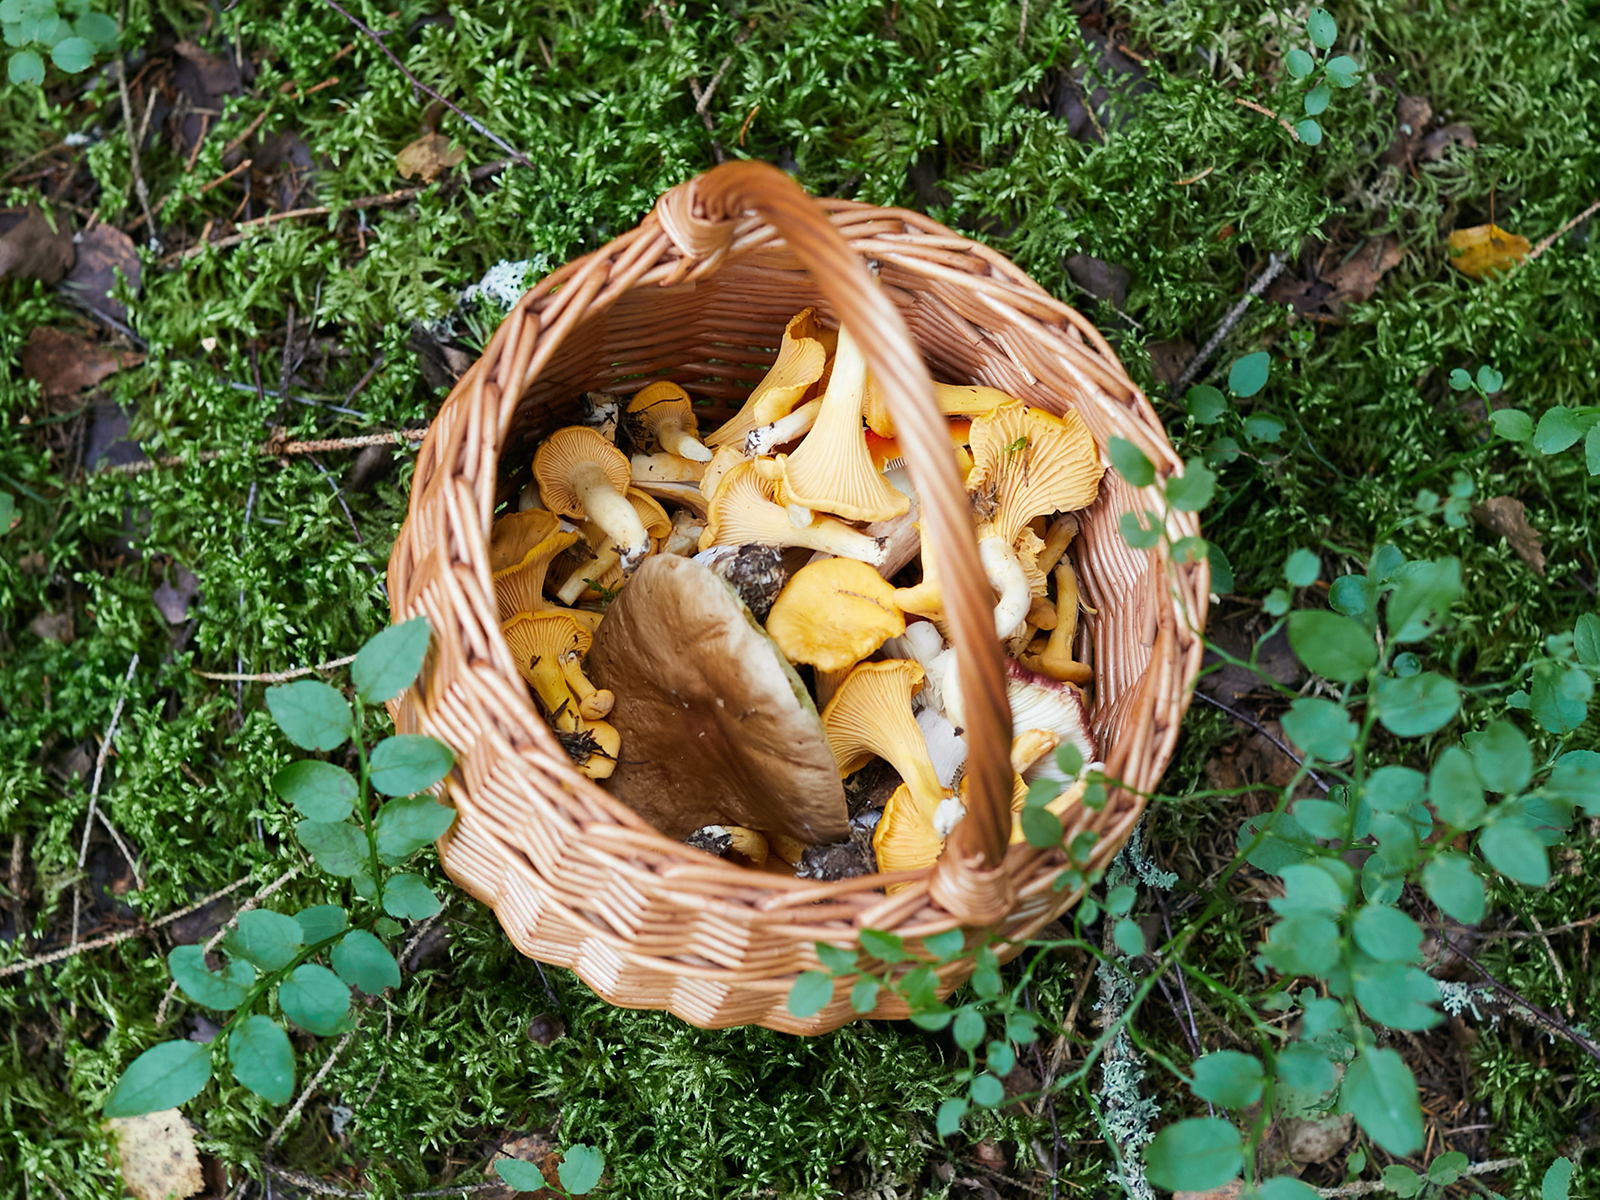 A Guide to Hunting for Edible Mushrooms in Colorado